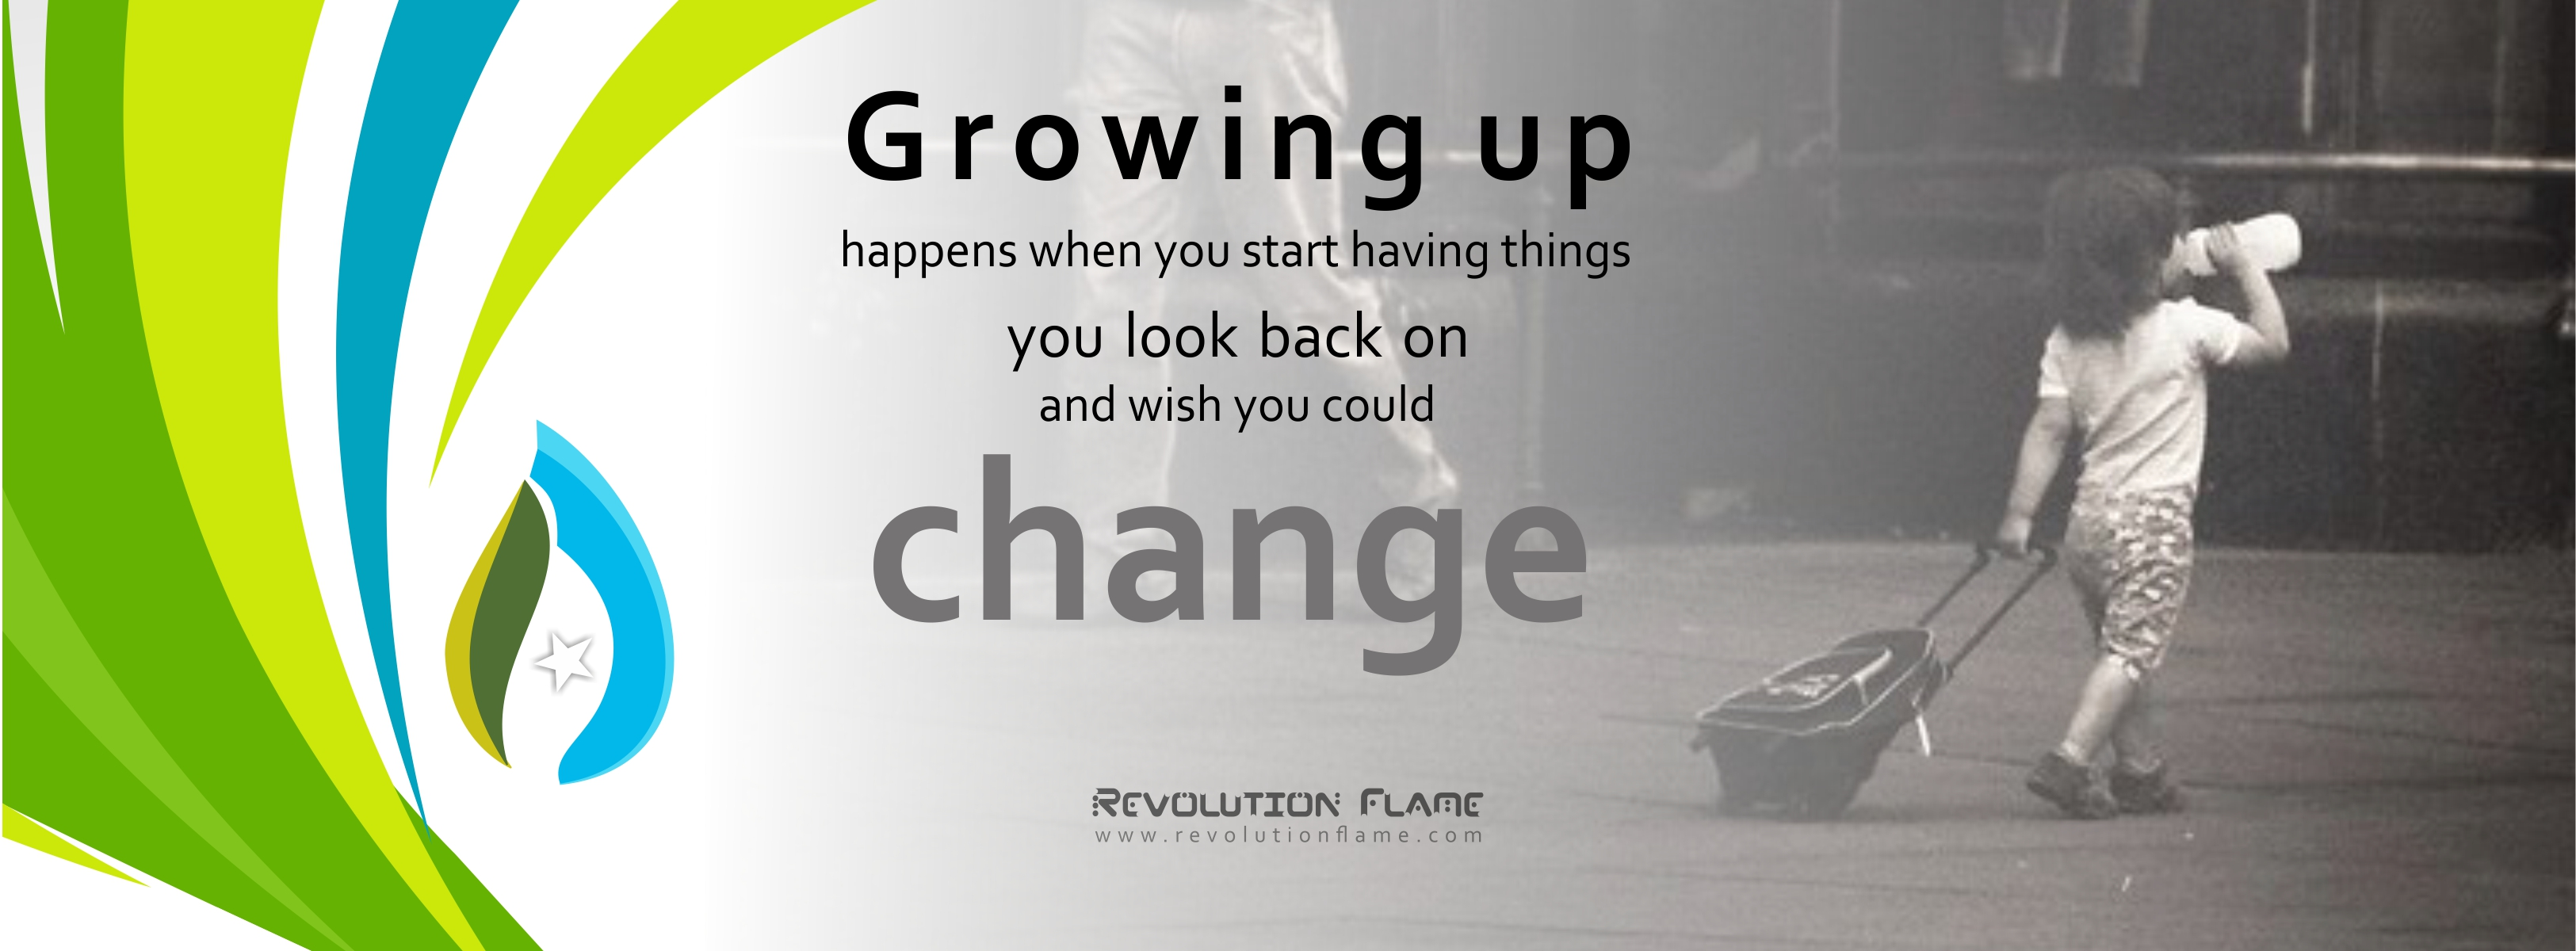 Quotes About Changing And Growing Up. QuotesGram